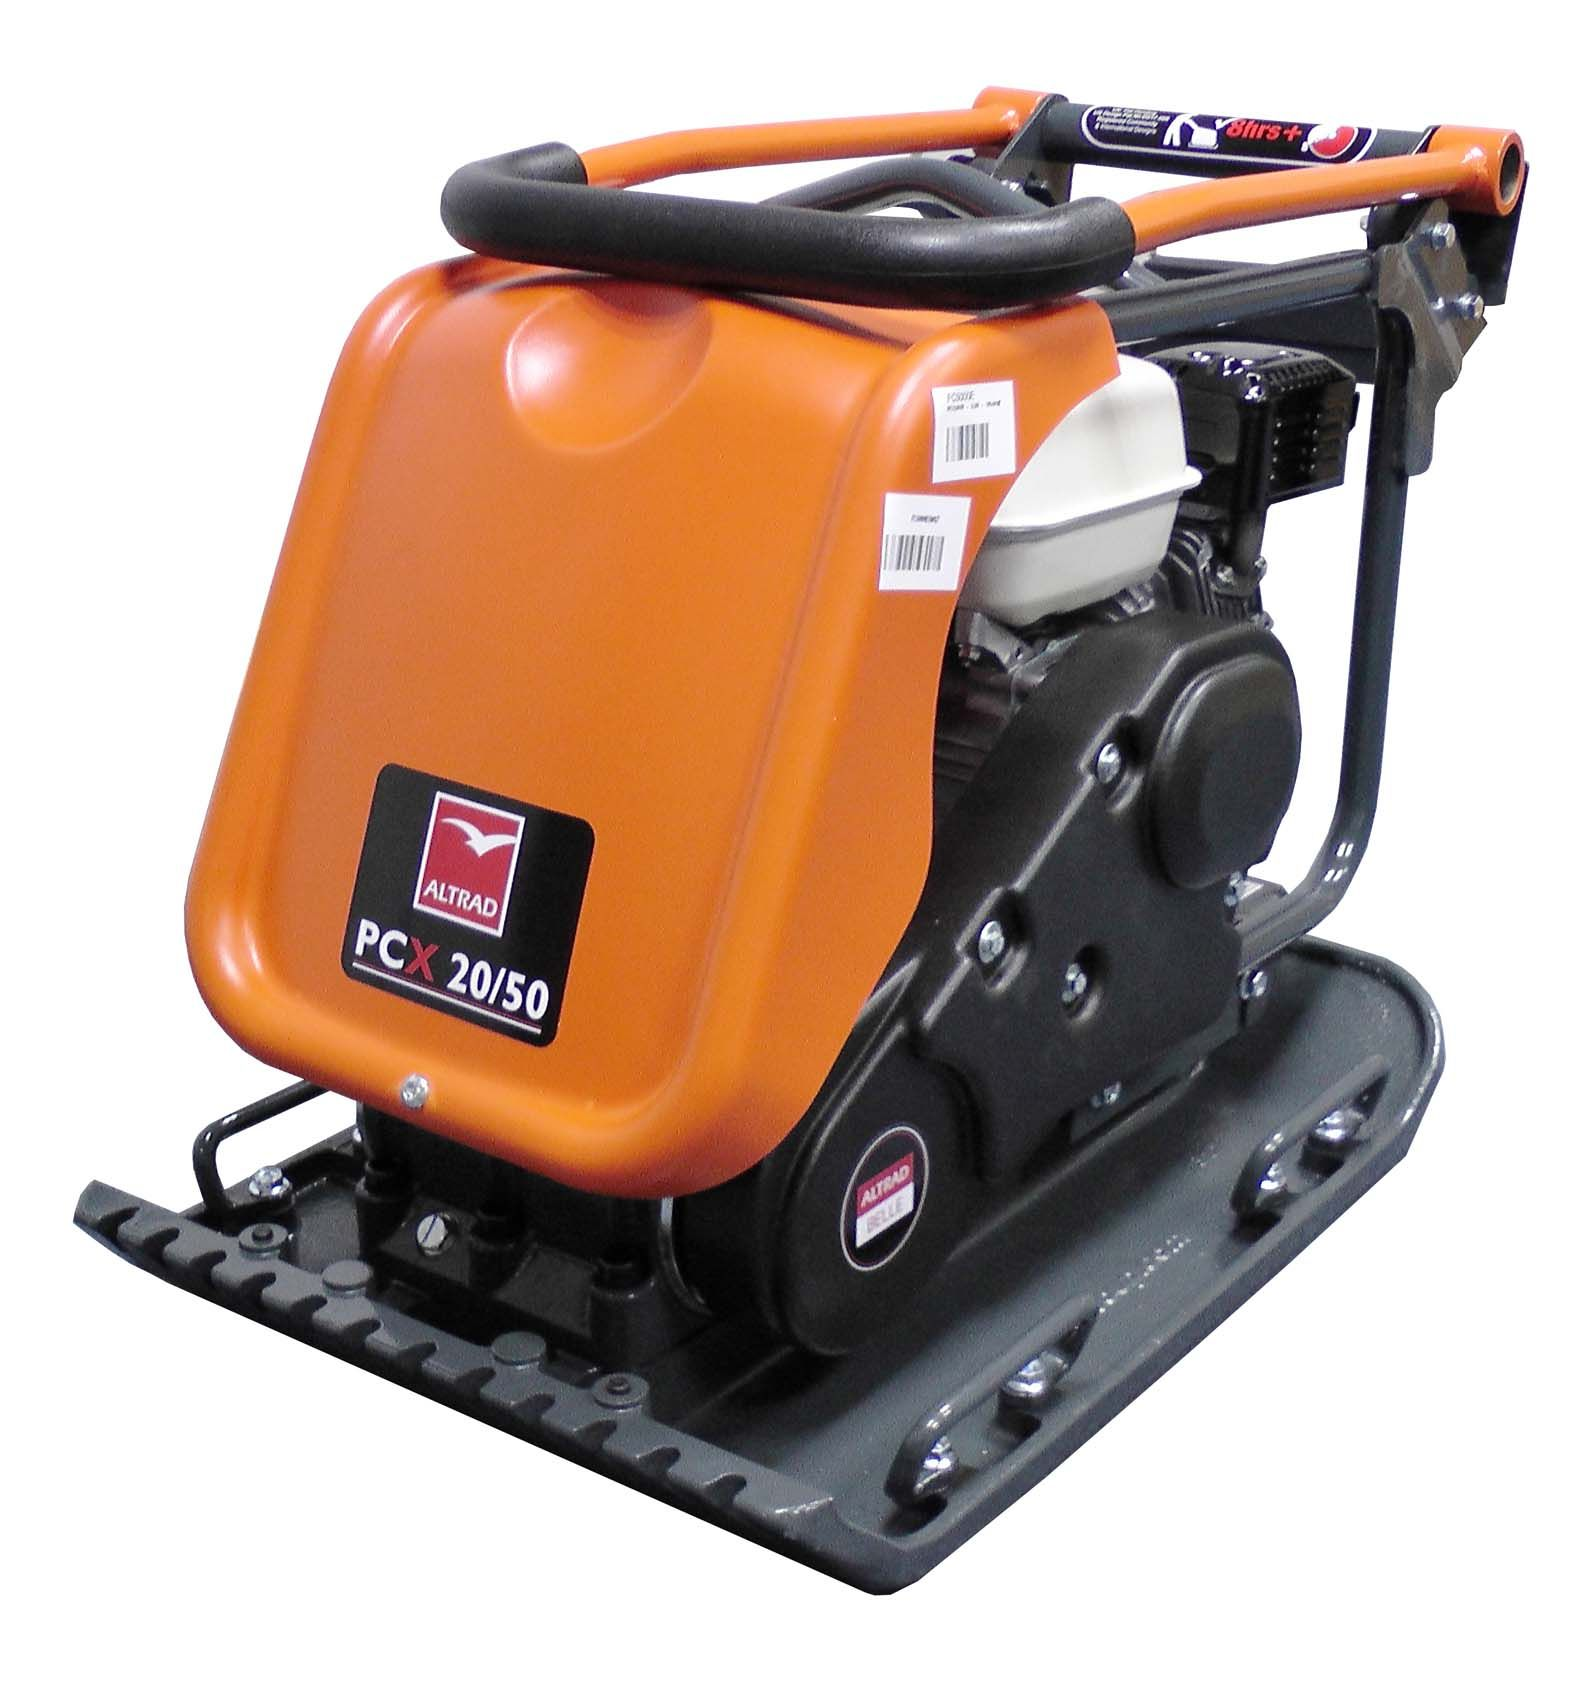 Belle PCX20/50 Plate Compactor